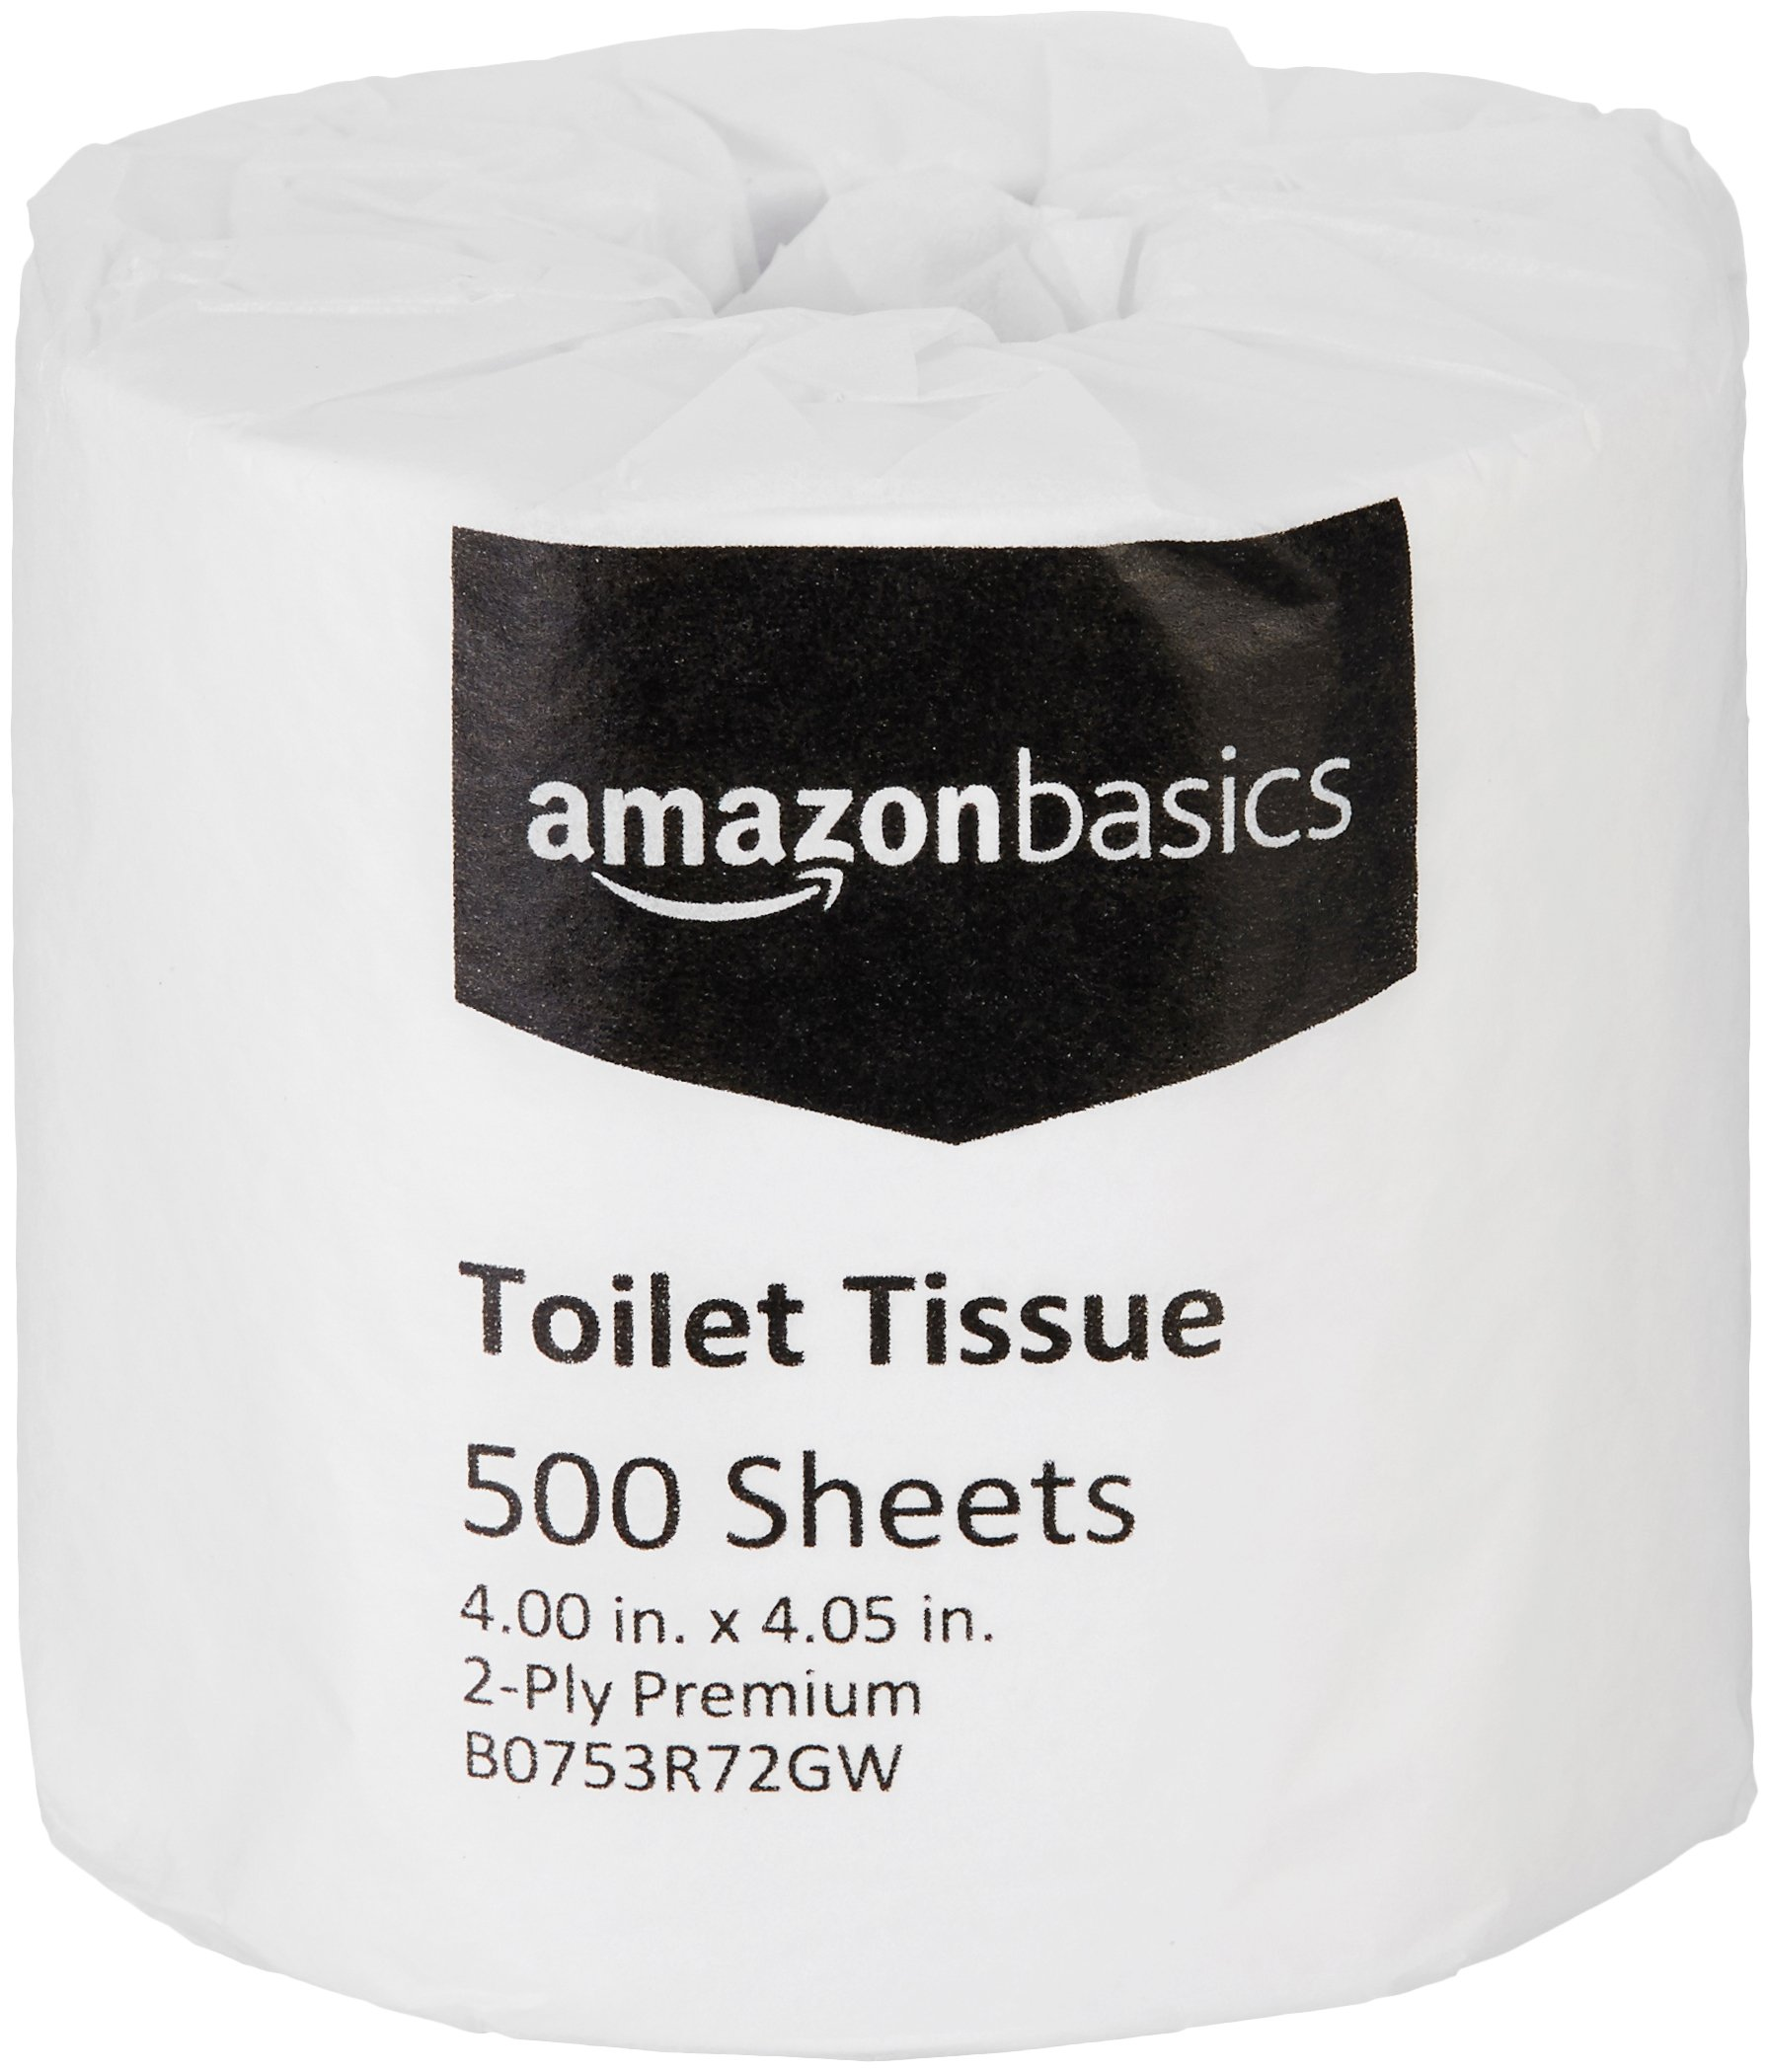 AmazonBasics Professional Value Toilet Tissue for Businesses, 2-Ply, 500 Sheets per Roll, 80 Rolls